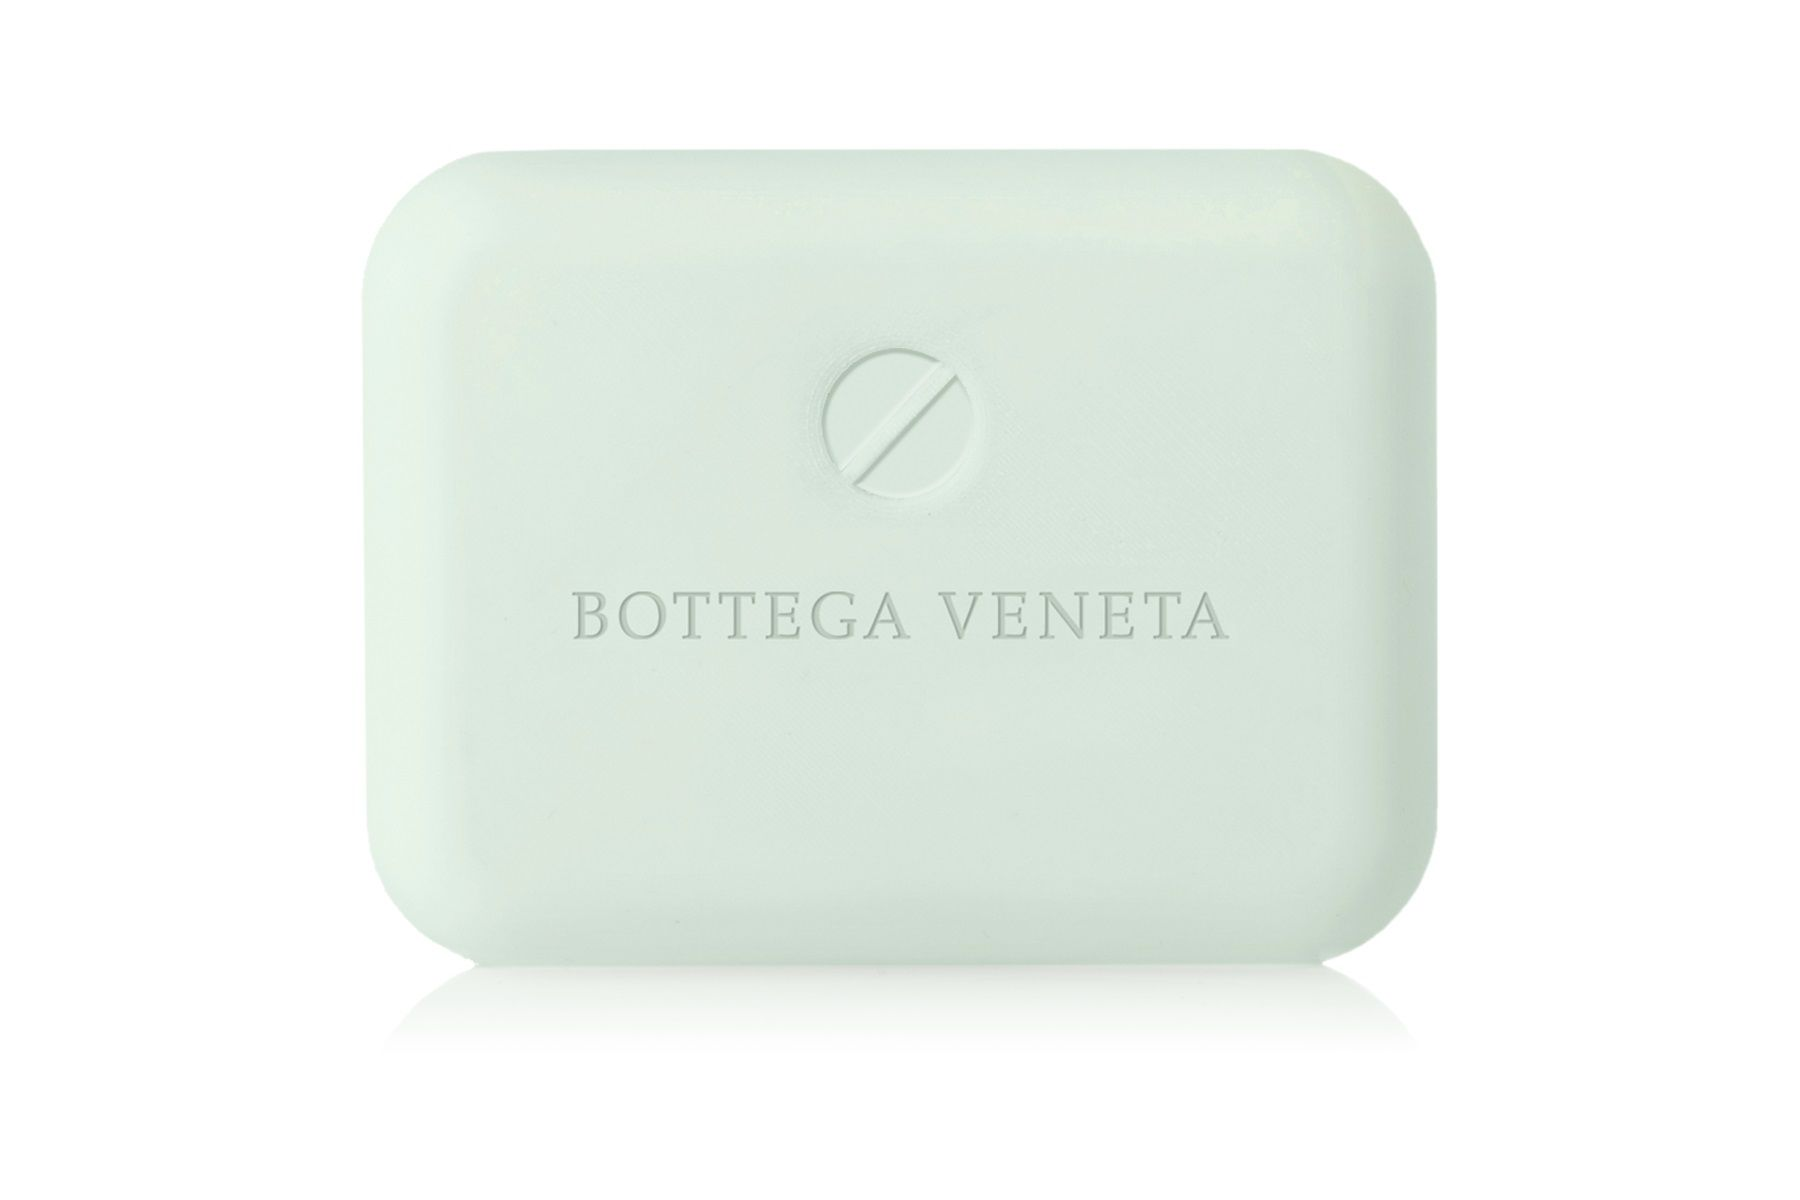 Bottega Veneta Bottega Veneta Essence Aromatique Pour Homme Perfumed Soap